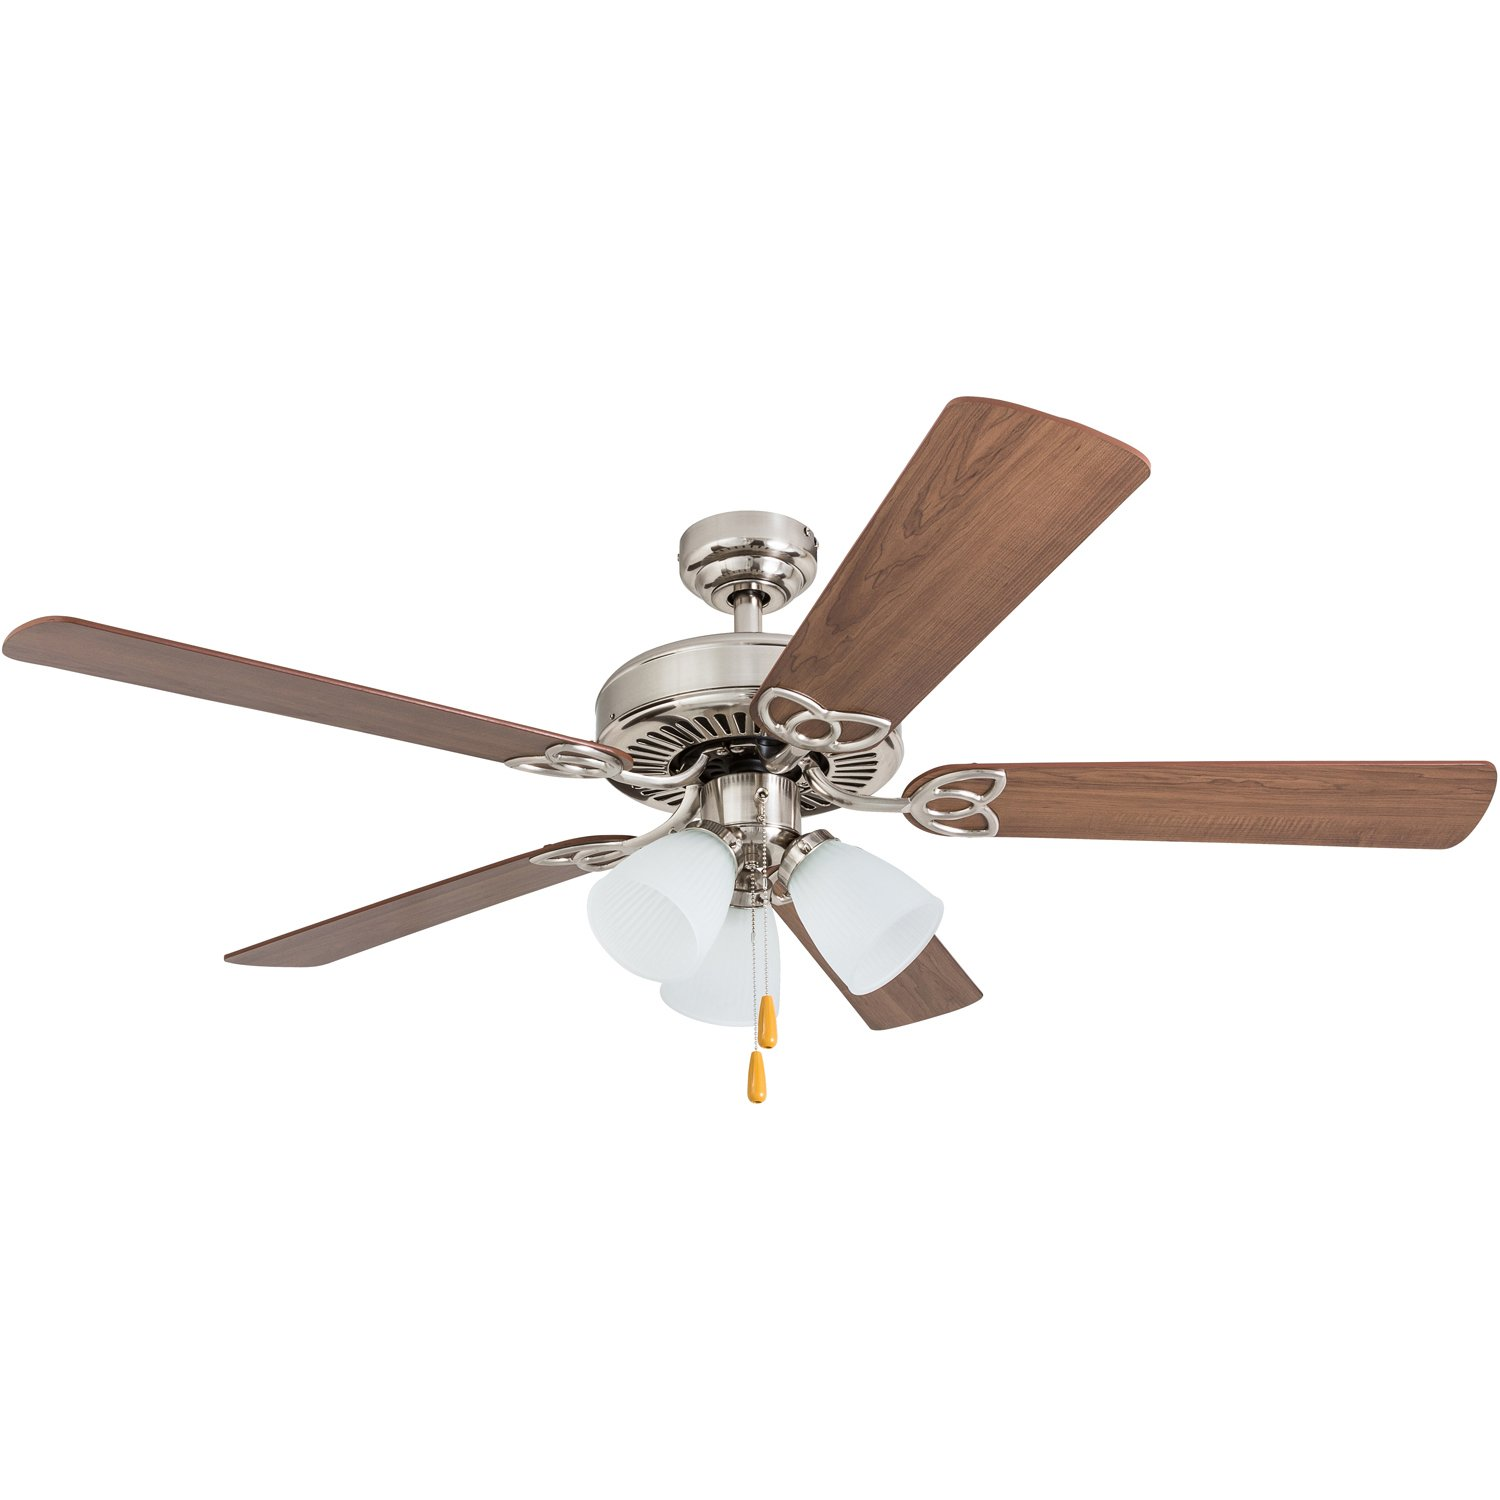 Portage Bay 50256 Stannor 52'' Brushed Nickel Ceiling Fan with 3 Arm Light by Portage Bay